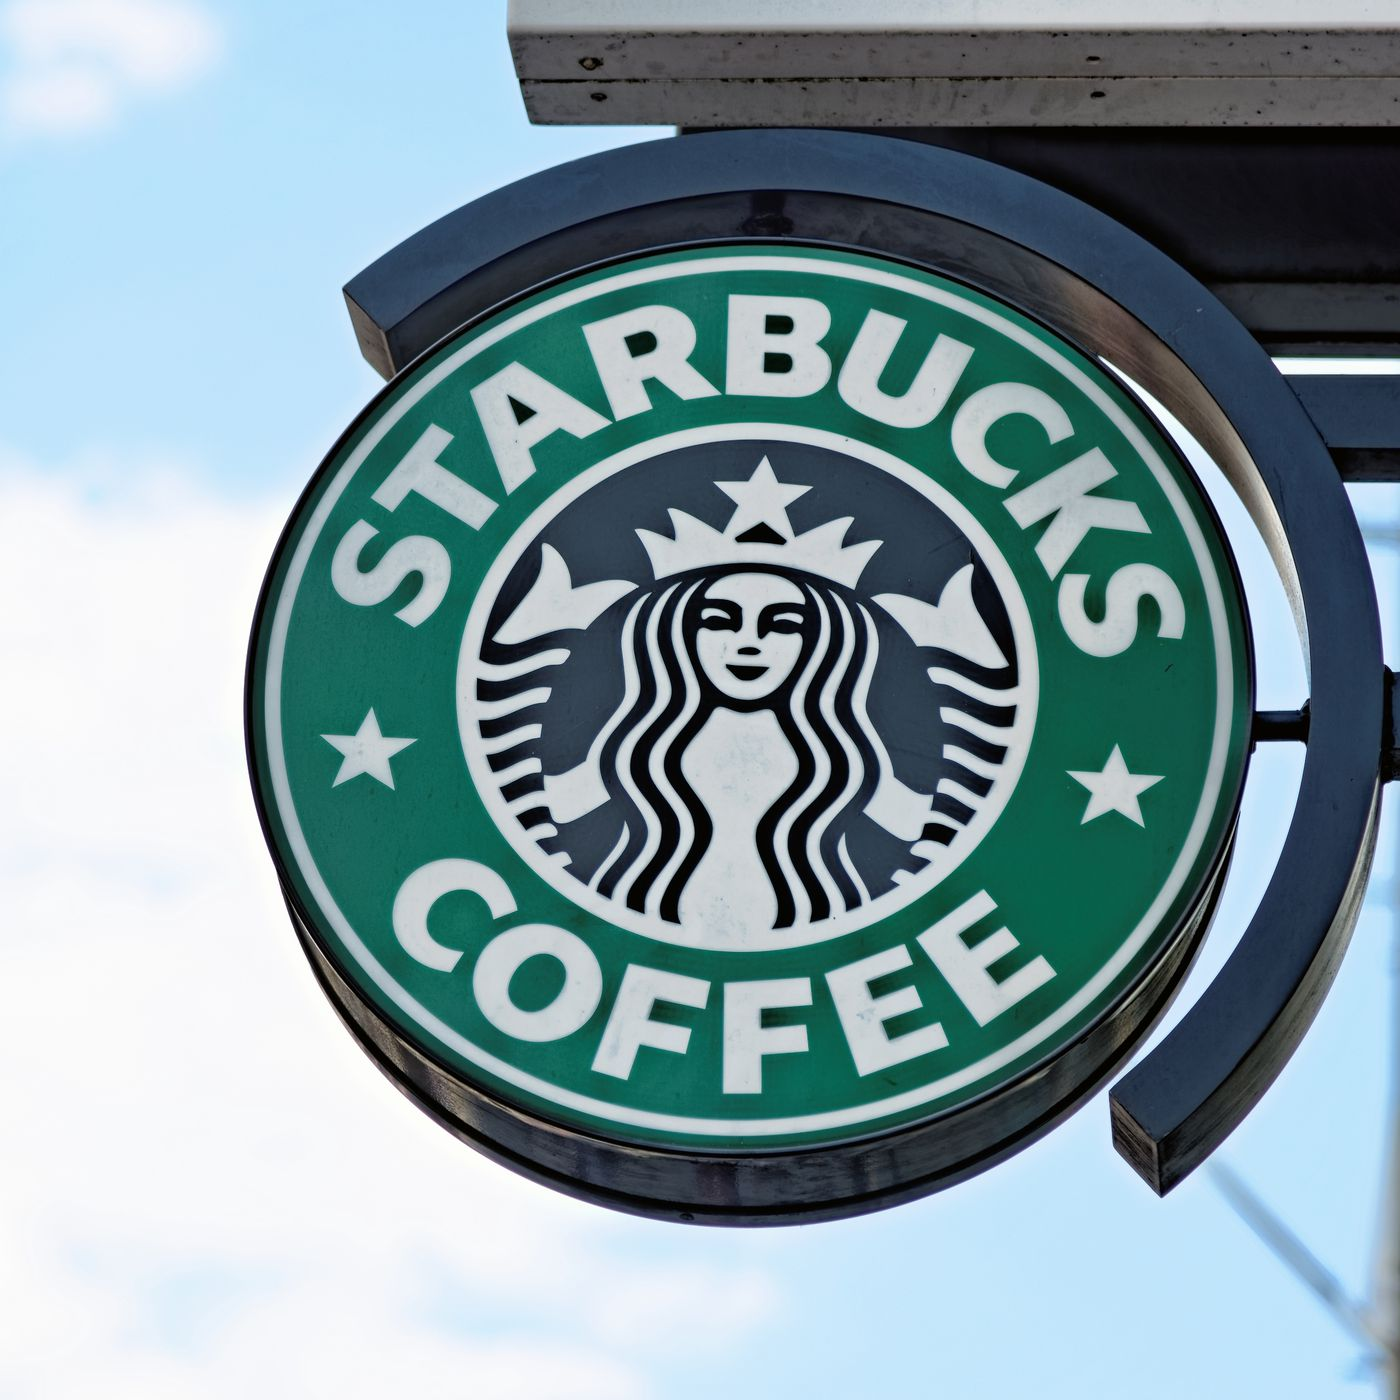 Starbucks Under Investigation For Unfair Tax Deal With The